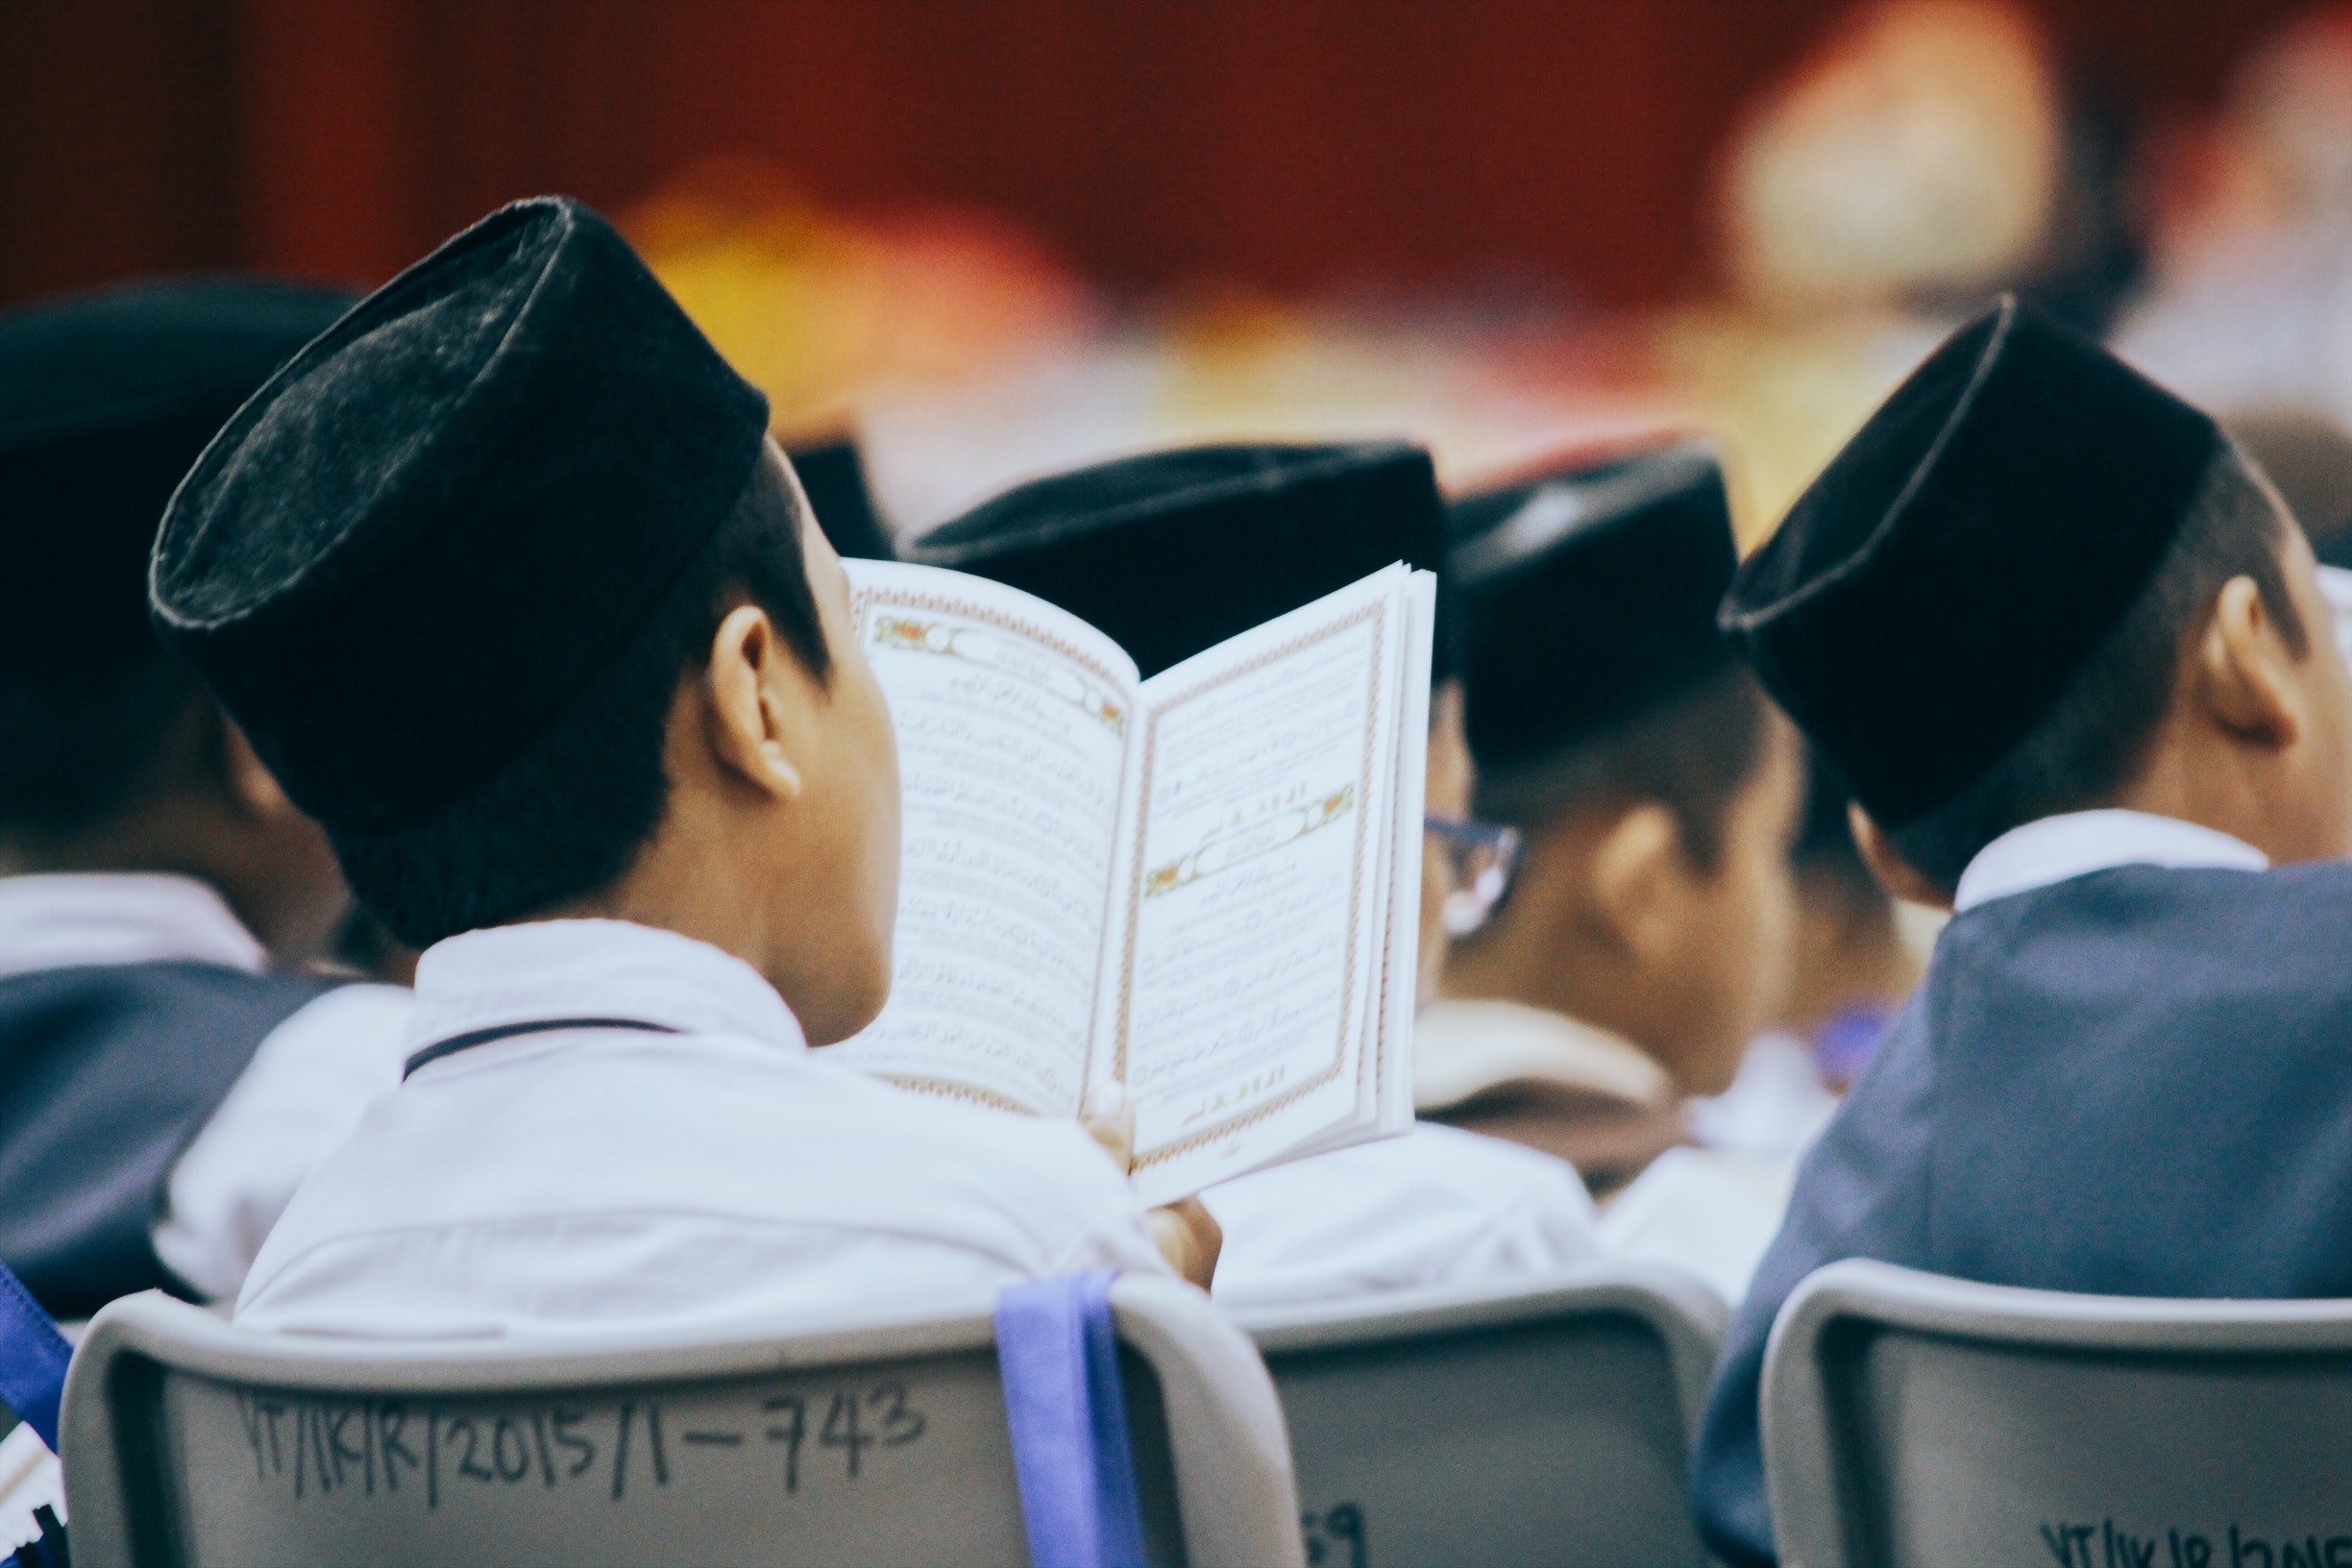 People Sitting on Chair Reading Books, Adolescent, Book, Boys, Education, HQ Photo